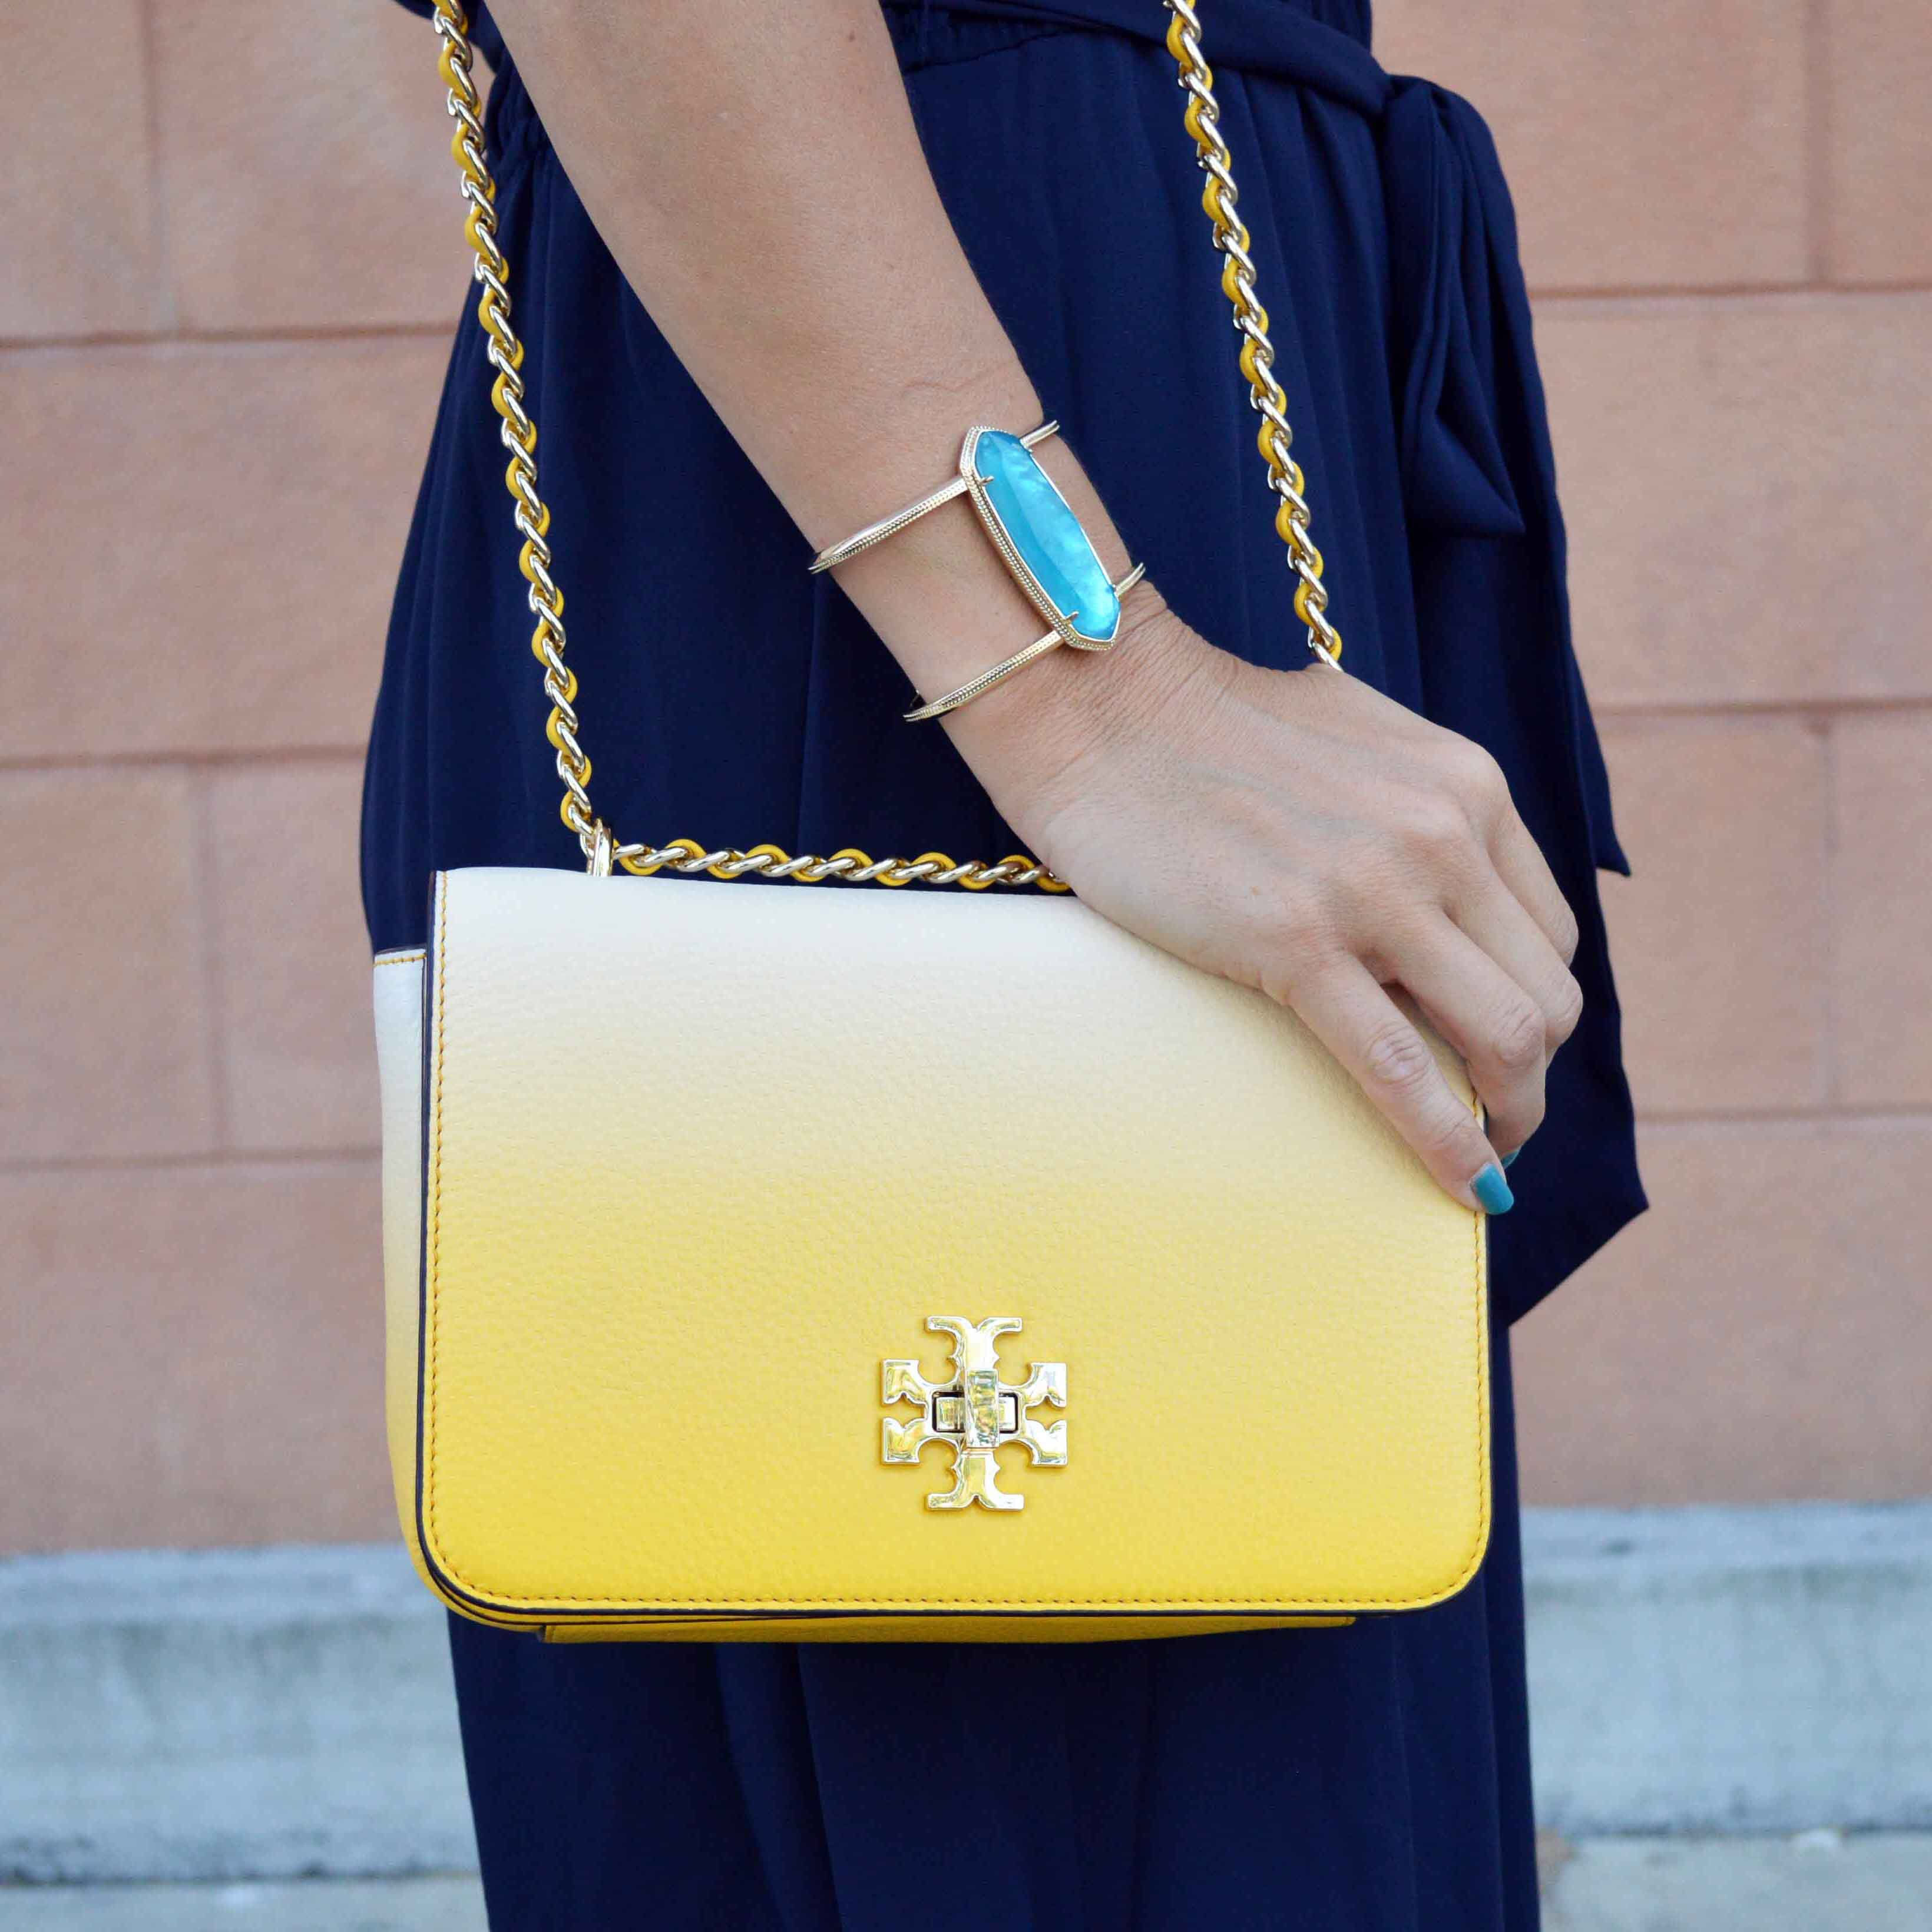 tory burch degrade shoulder bag